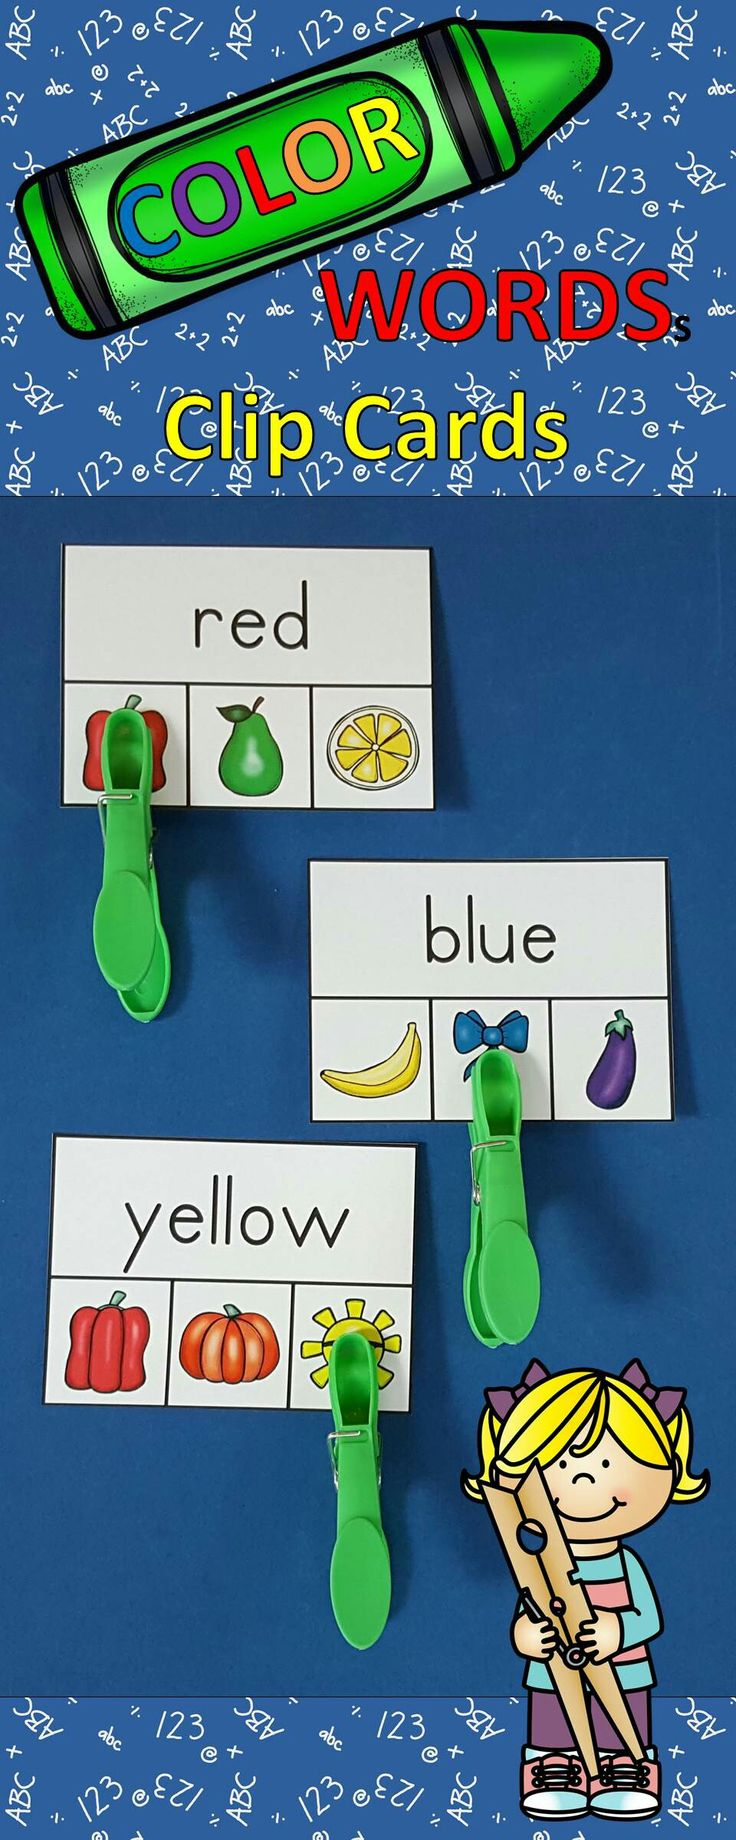 Engaging Color Word Literacy Centers for Your Little Learners!  Great for Morning Tubs, Early Finishers, and Take Home Practice. $   #colorwords  #literacycenters  #kampkindergarten #earlyfinishers #morningtubs    https://www.teacherspayteachers.com/Product/Color-Words-Clip-Cards-2750763